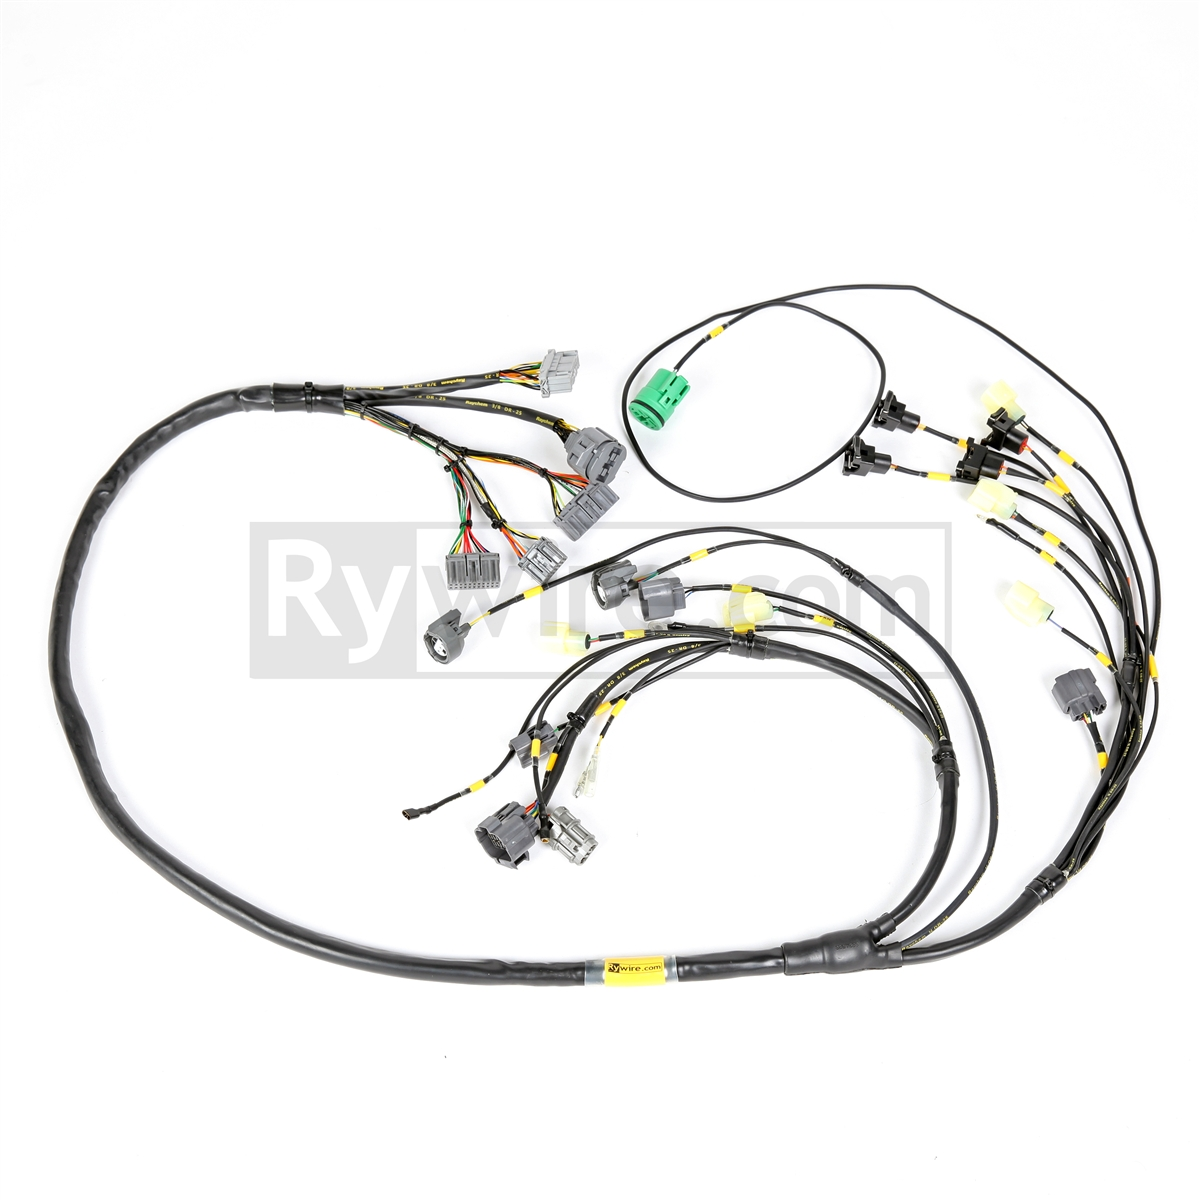 H1 Milspec 2?1402582650 rywire com mil spec f series (f20b) & h series (h22) harness 94 Civic Engine Red at creativeand.co